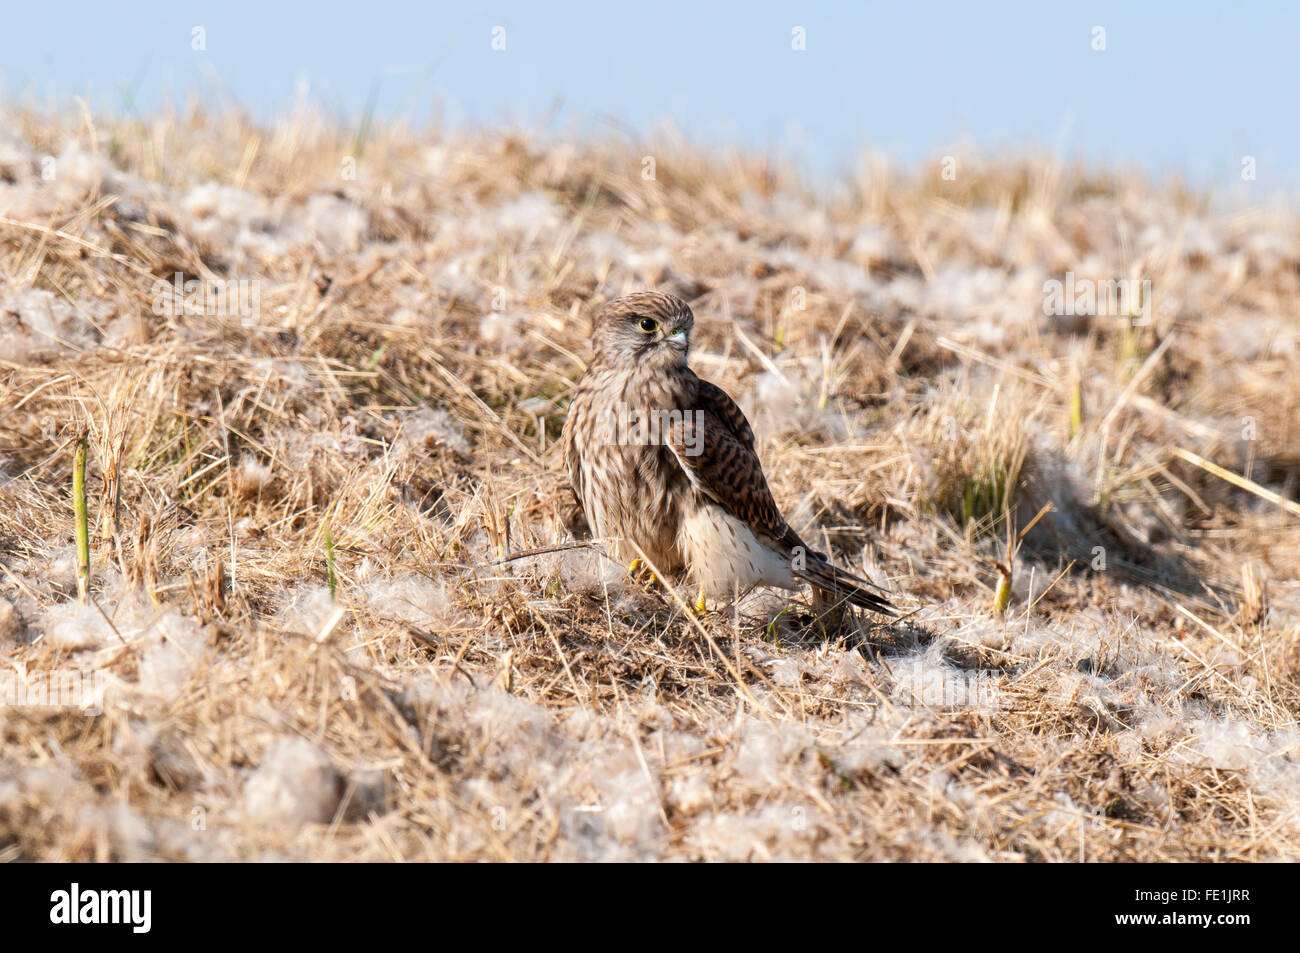 Kestrel (Falco tinnunculus) perched on a grassy bank covered in straw and fluffy seeds on the Isle of Sheppey, Kent. - Stock Image